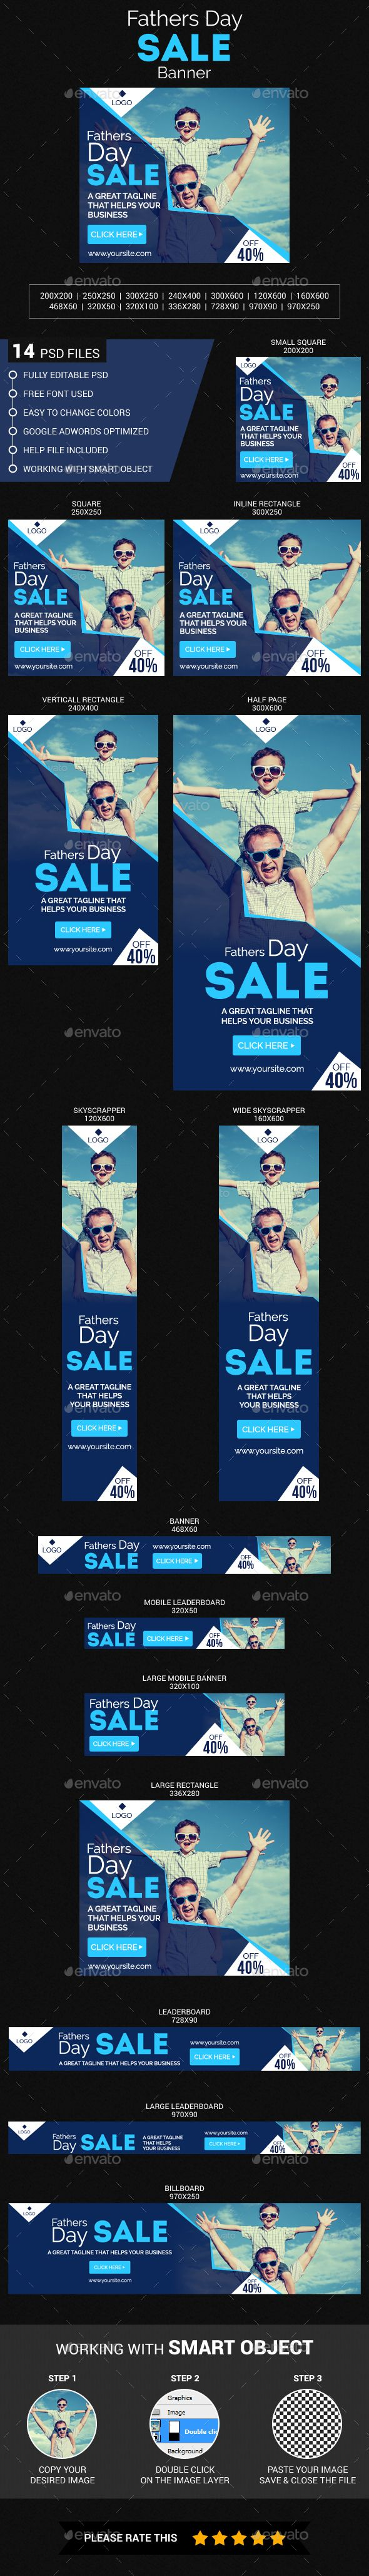 Fathers Day Sale — Photoshop PSD #Fathers Day #promotions • Available here → https://graphicriver.net/item/fathers-day-sale/20086885?ref=pxcr